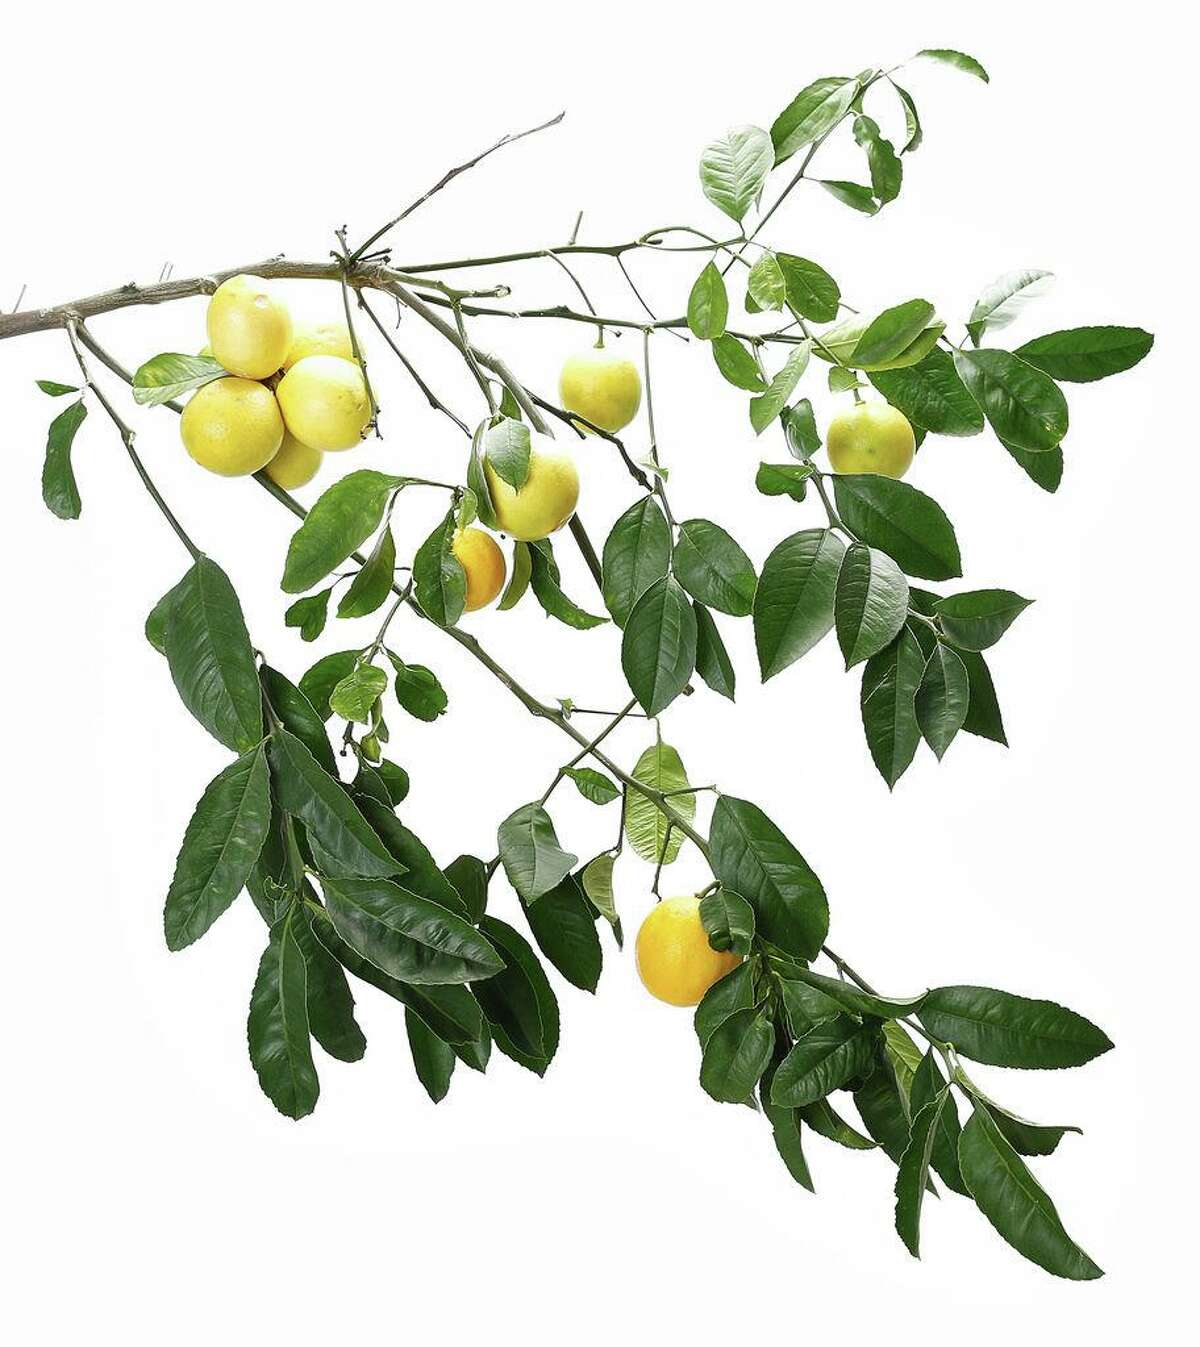 Lemon and lime trees are more susceptible to freeze damage than other citrus. It may take weeks more to see new growth.